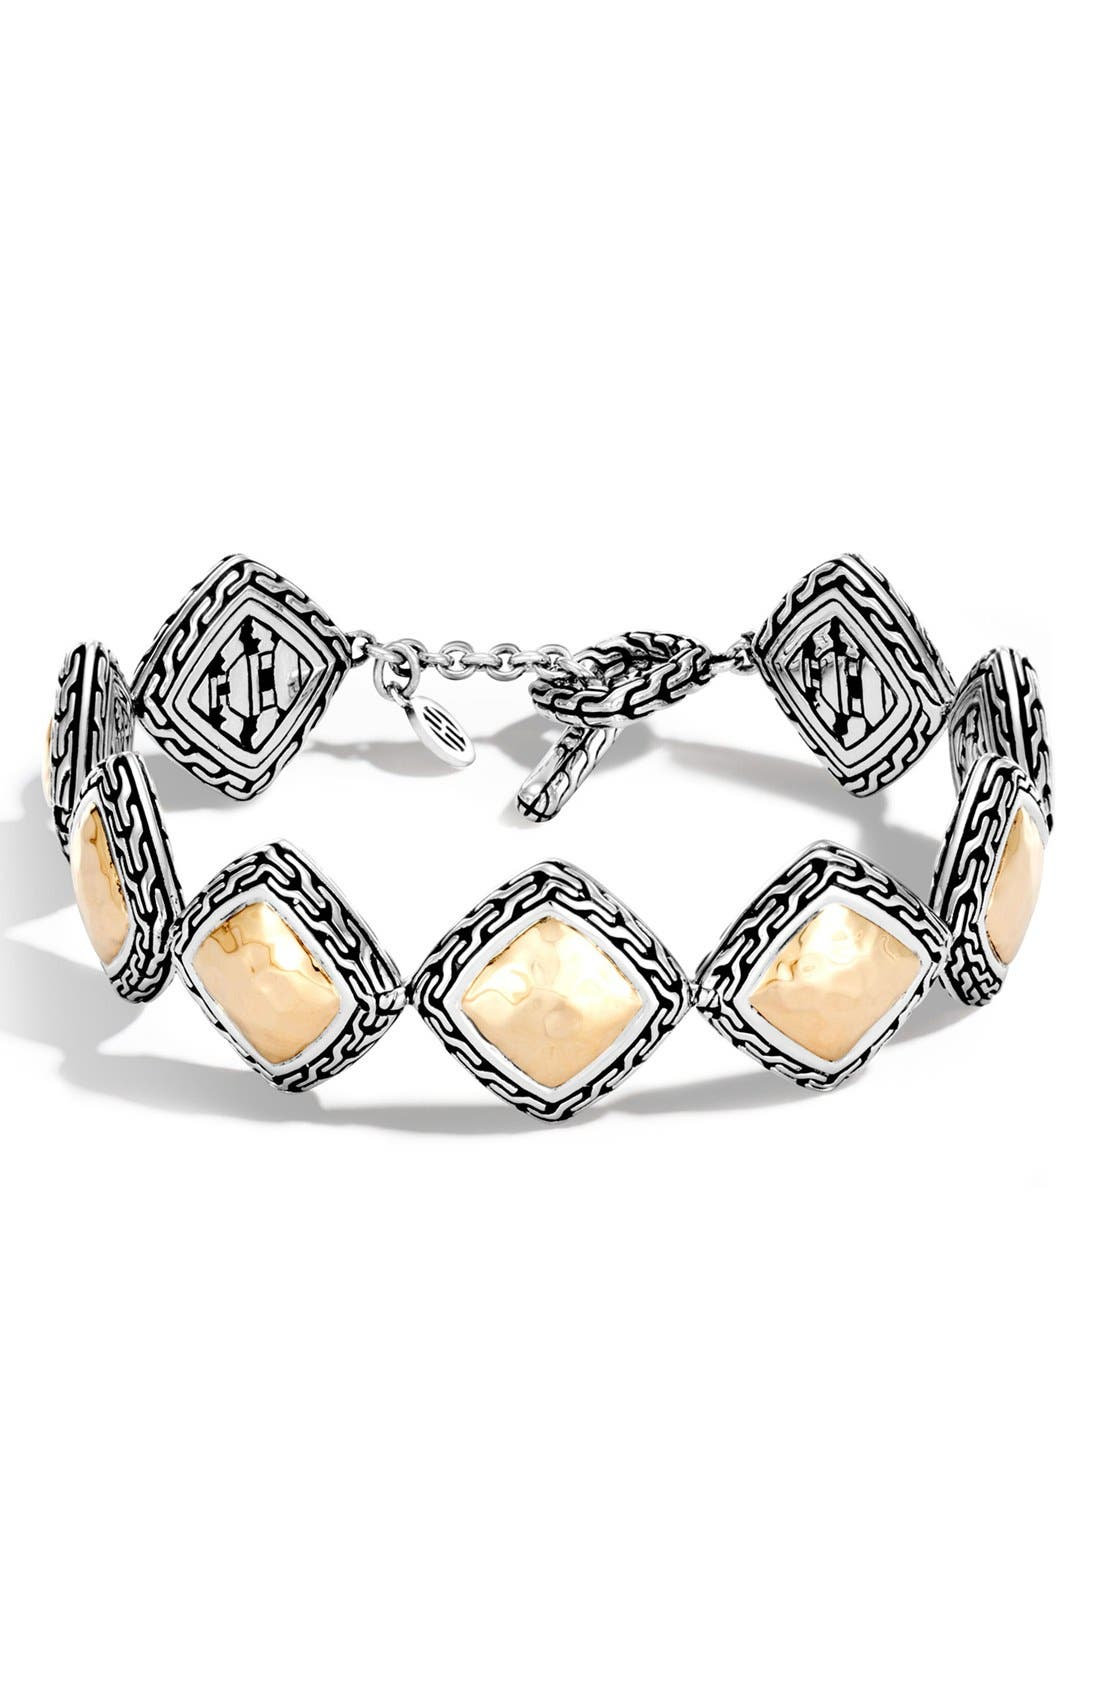 Classic Chain Heritage Quadrangle Bracelet,                             Main thumbnail 1, color,                             SILVER/ GOLD